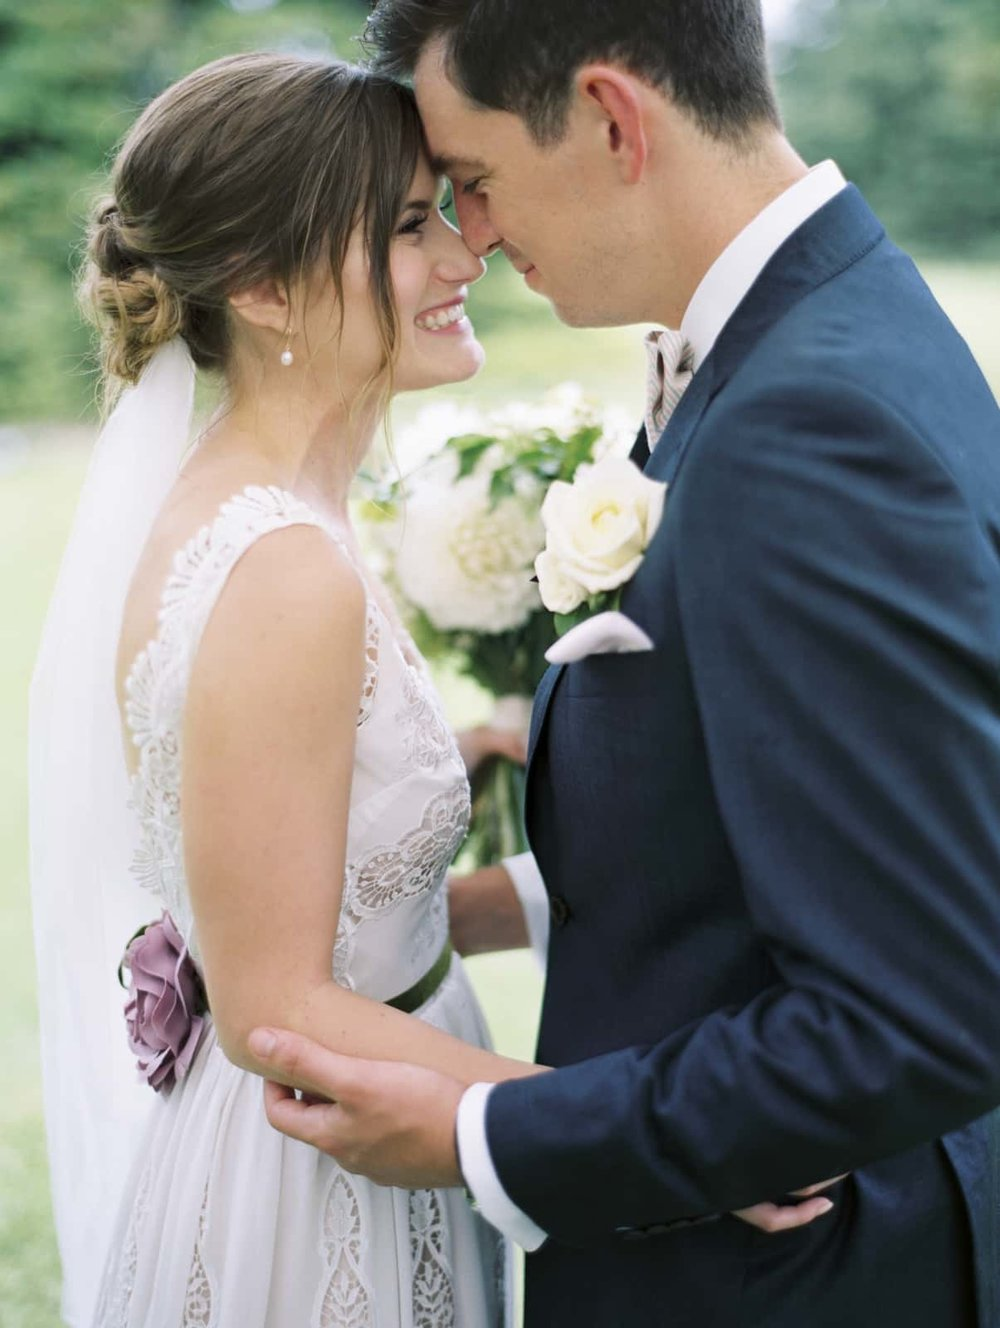 WEDDING-PHOTOGRAPHER-ADELAIDE_019.jpg